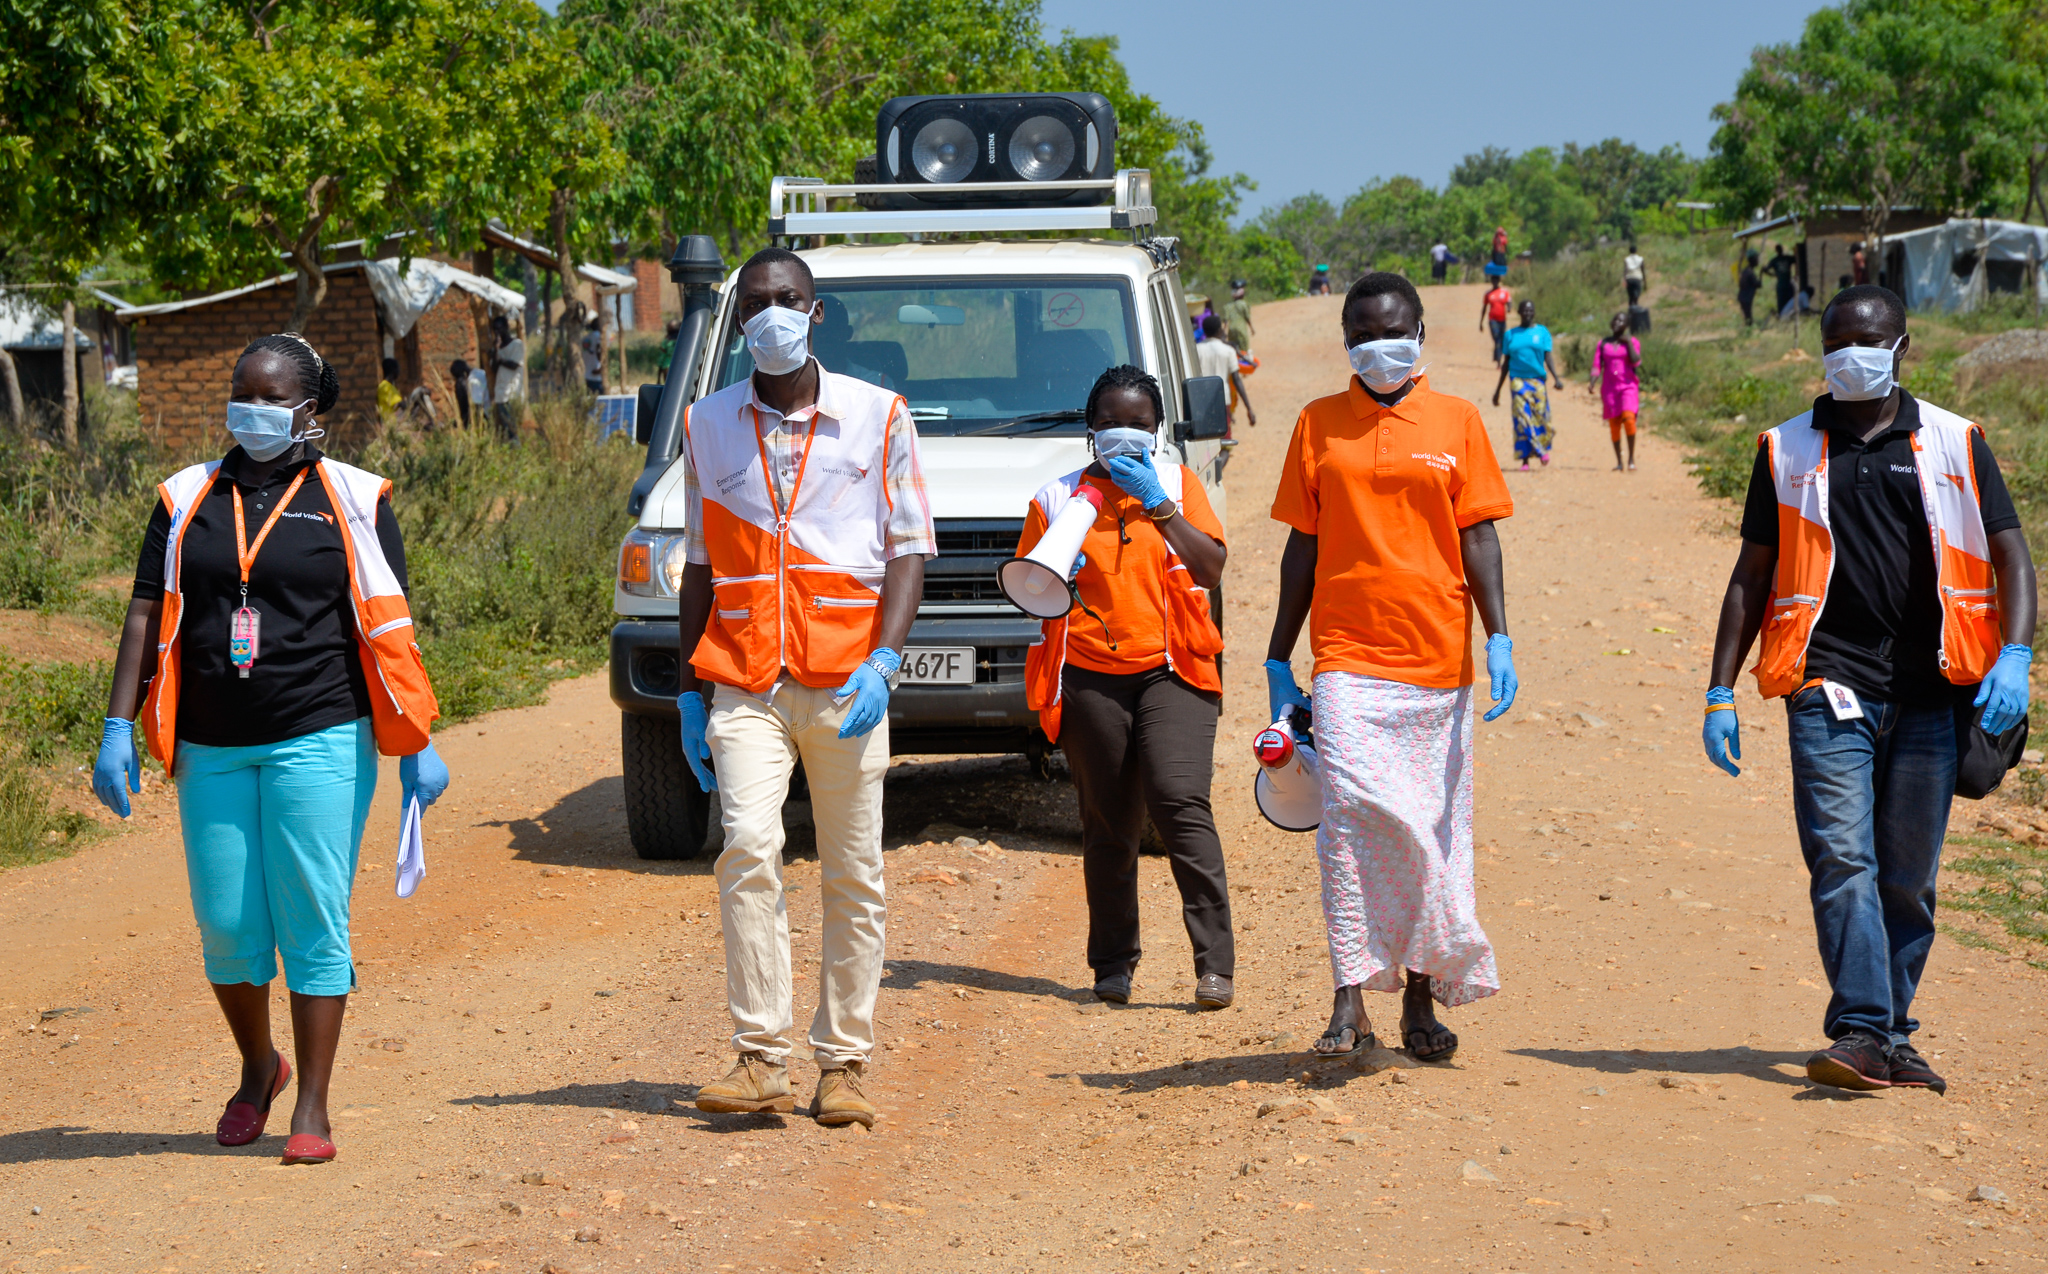 Humanitarian Agencies and Development Partners Boost Uganda's Fight Against COVID-19